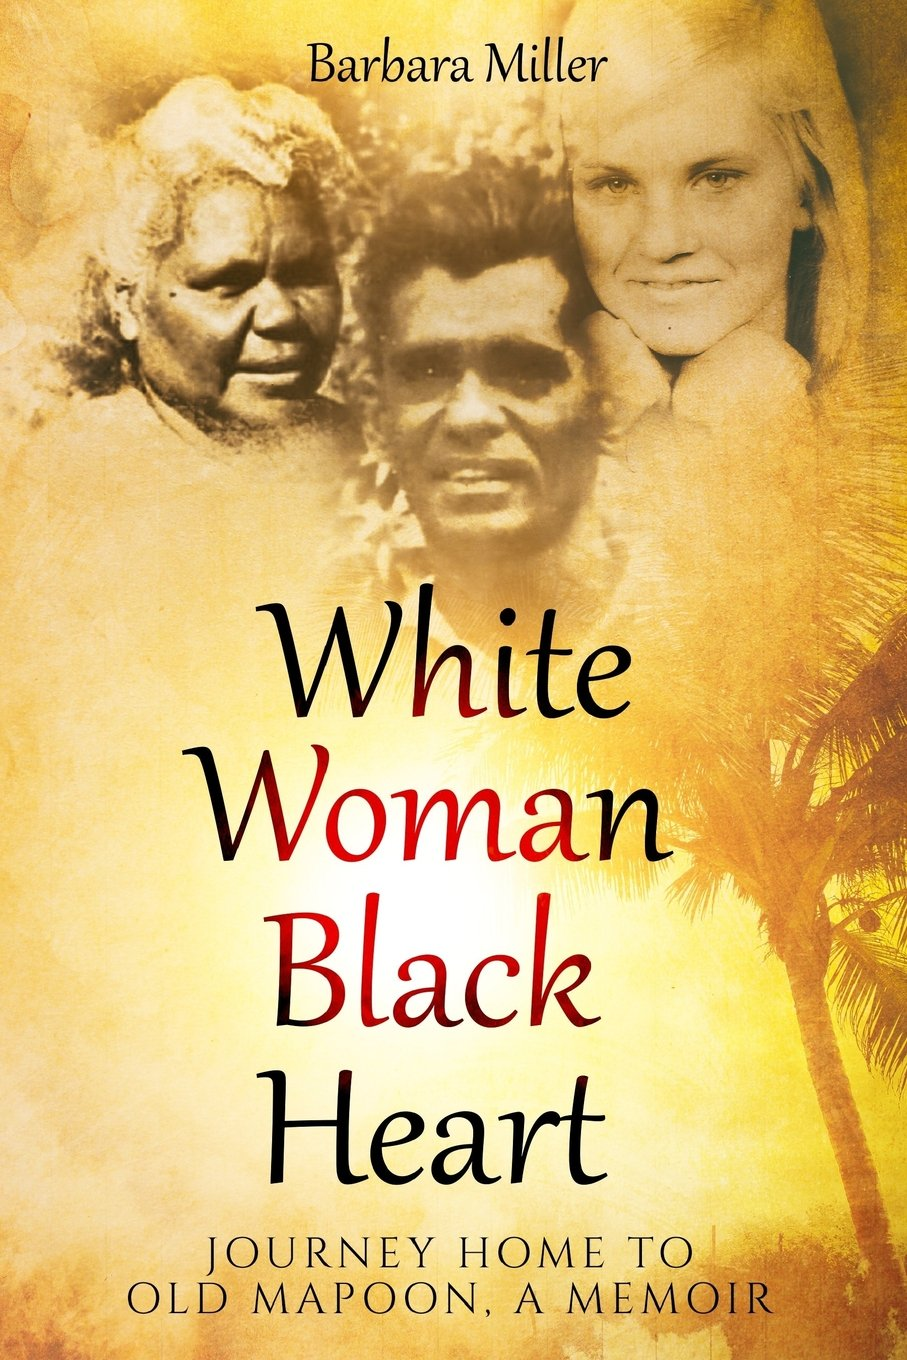 White Woman Black Heart: Journey Home to Old Mapoon, A Memoir (Volume 1) PDF